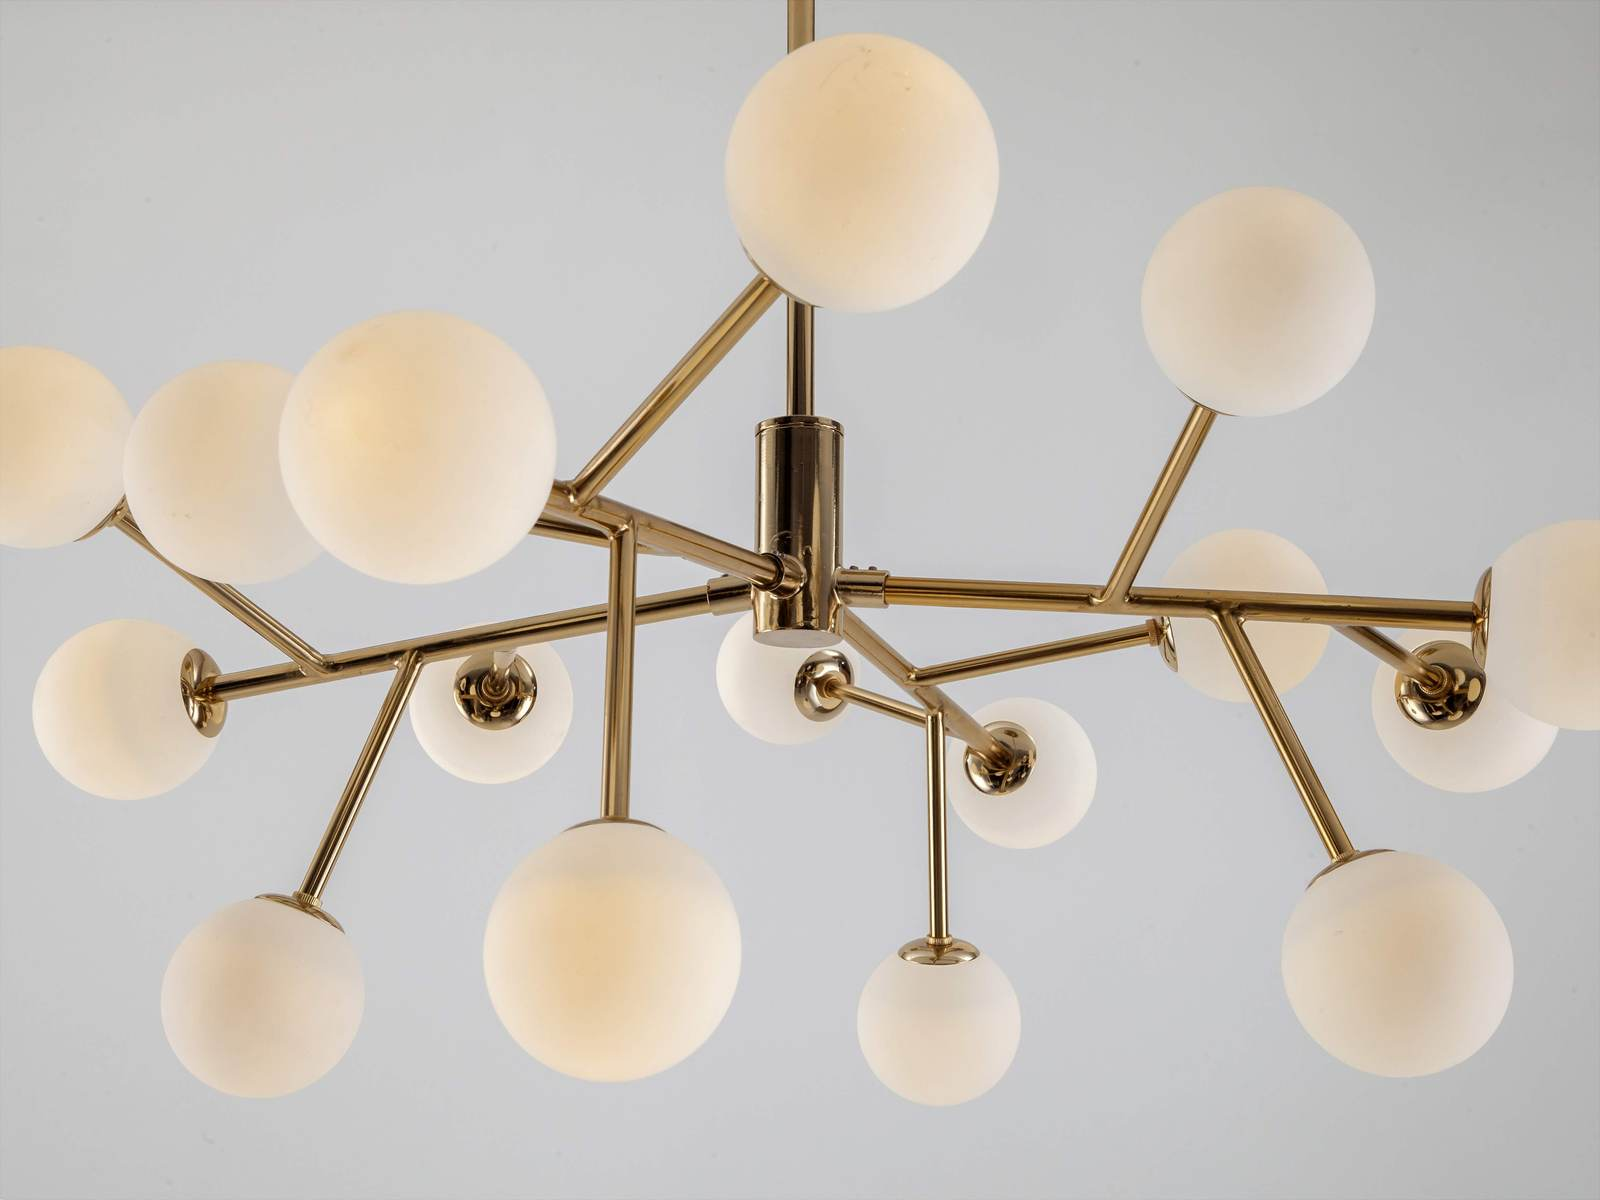 Sputnik ceiling light | brass | houseof.com